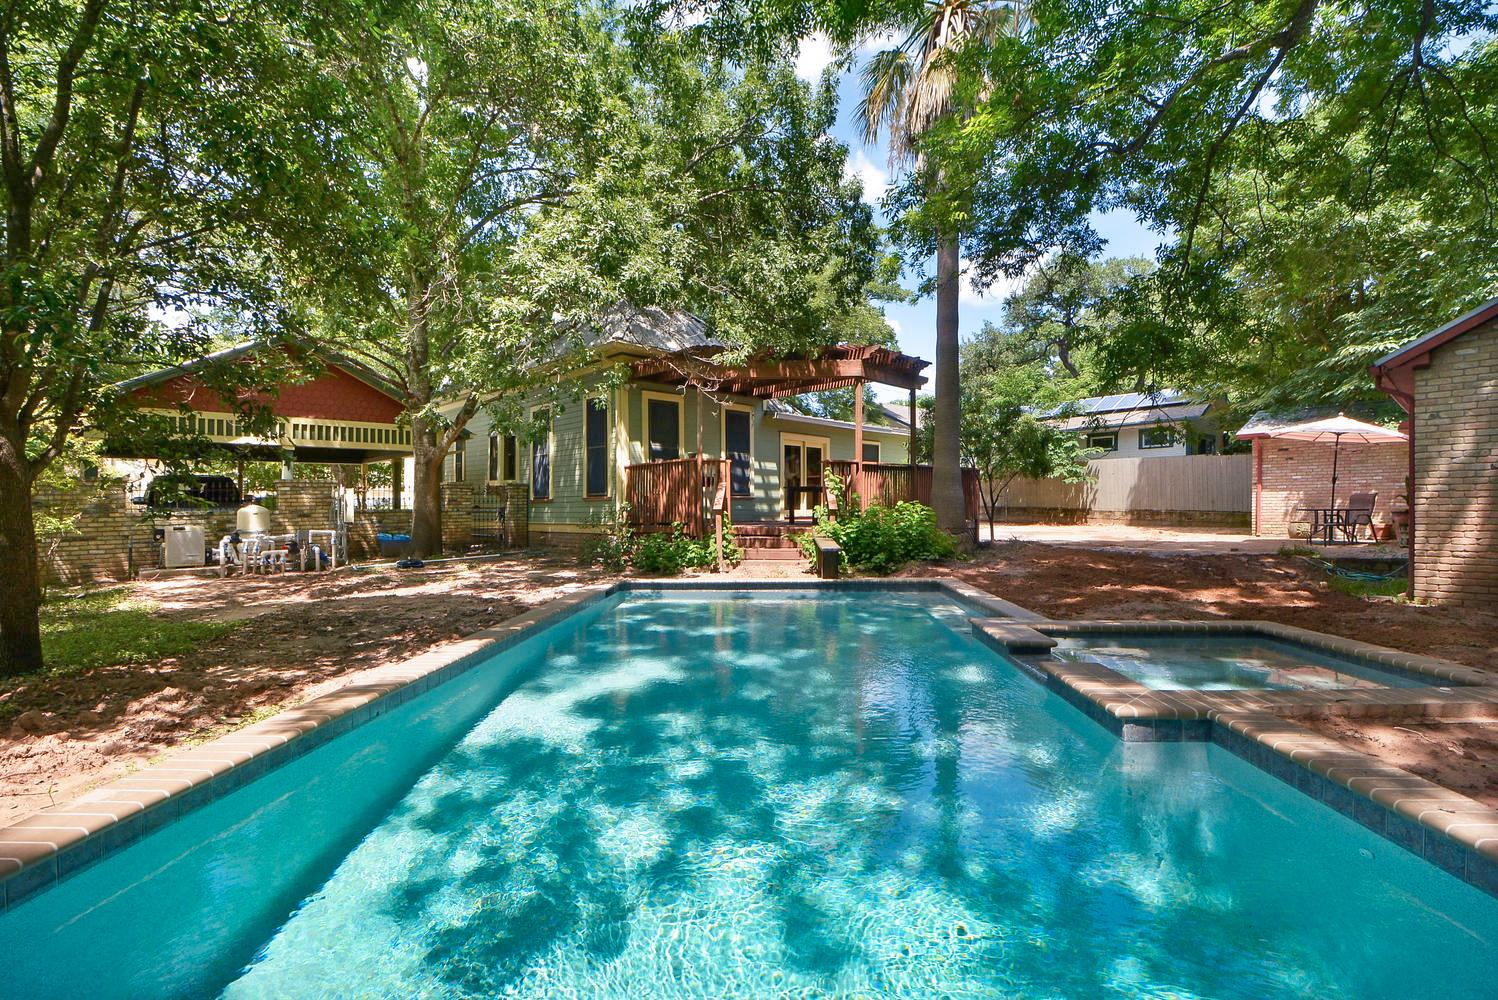 Welcome to Austin! The newly built pool and spa are a focal point for this beautiful rental.